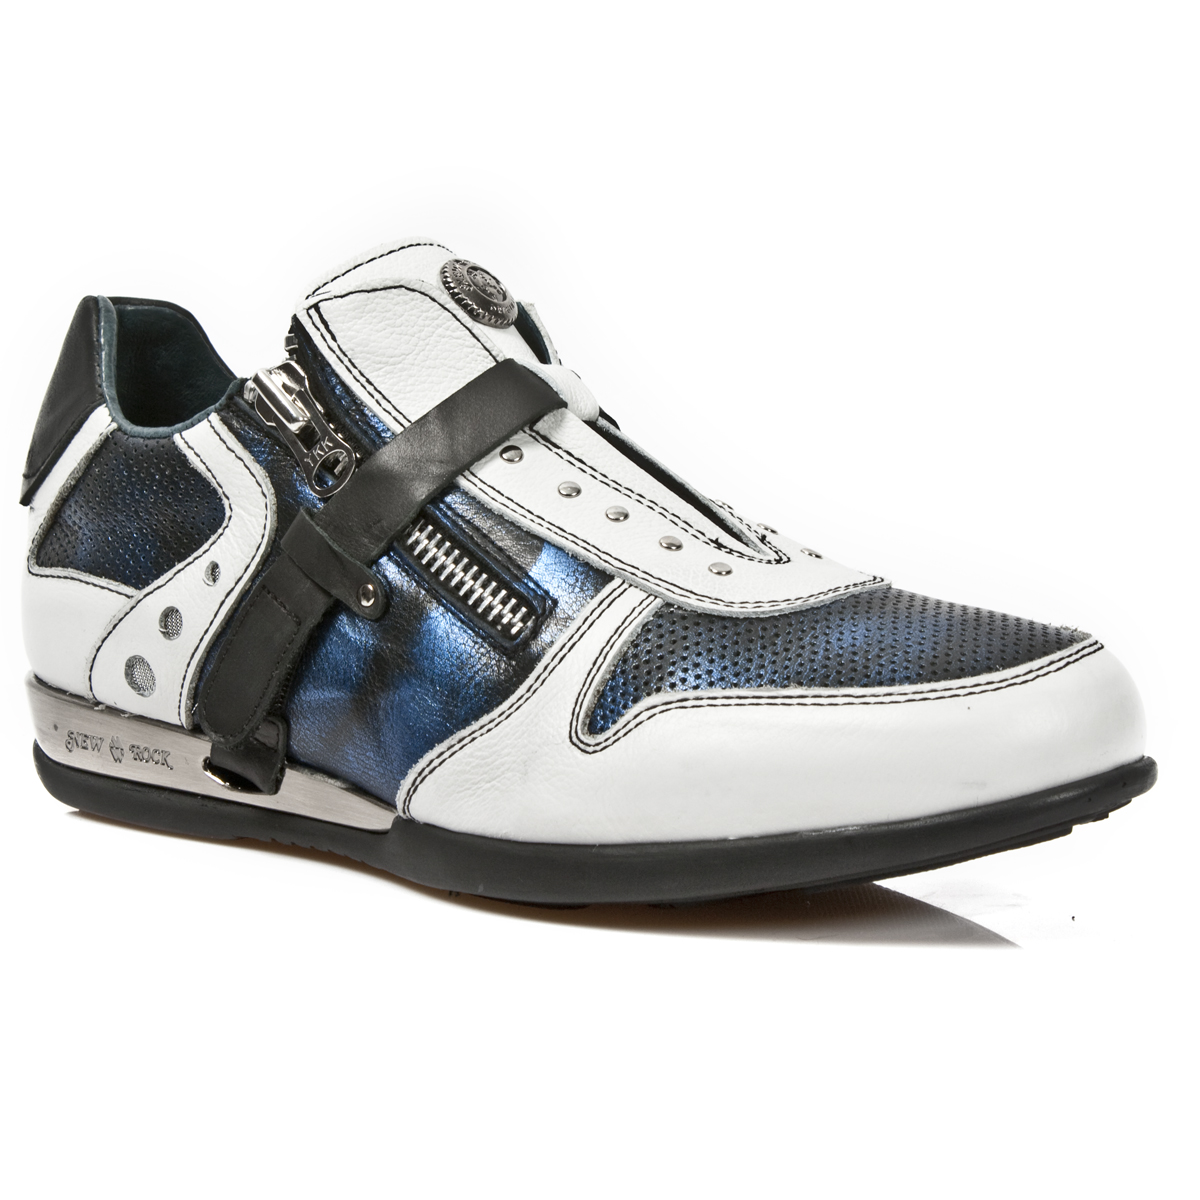 white blue leather hybrid dress shoes may take up to 45